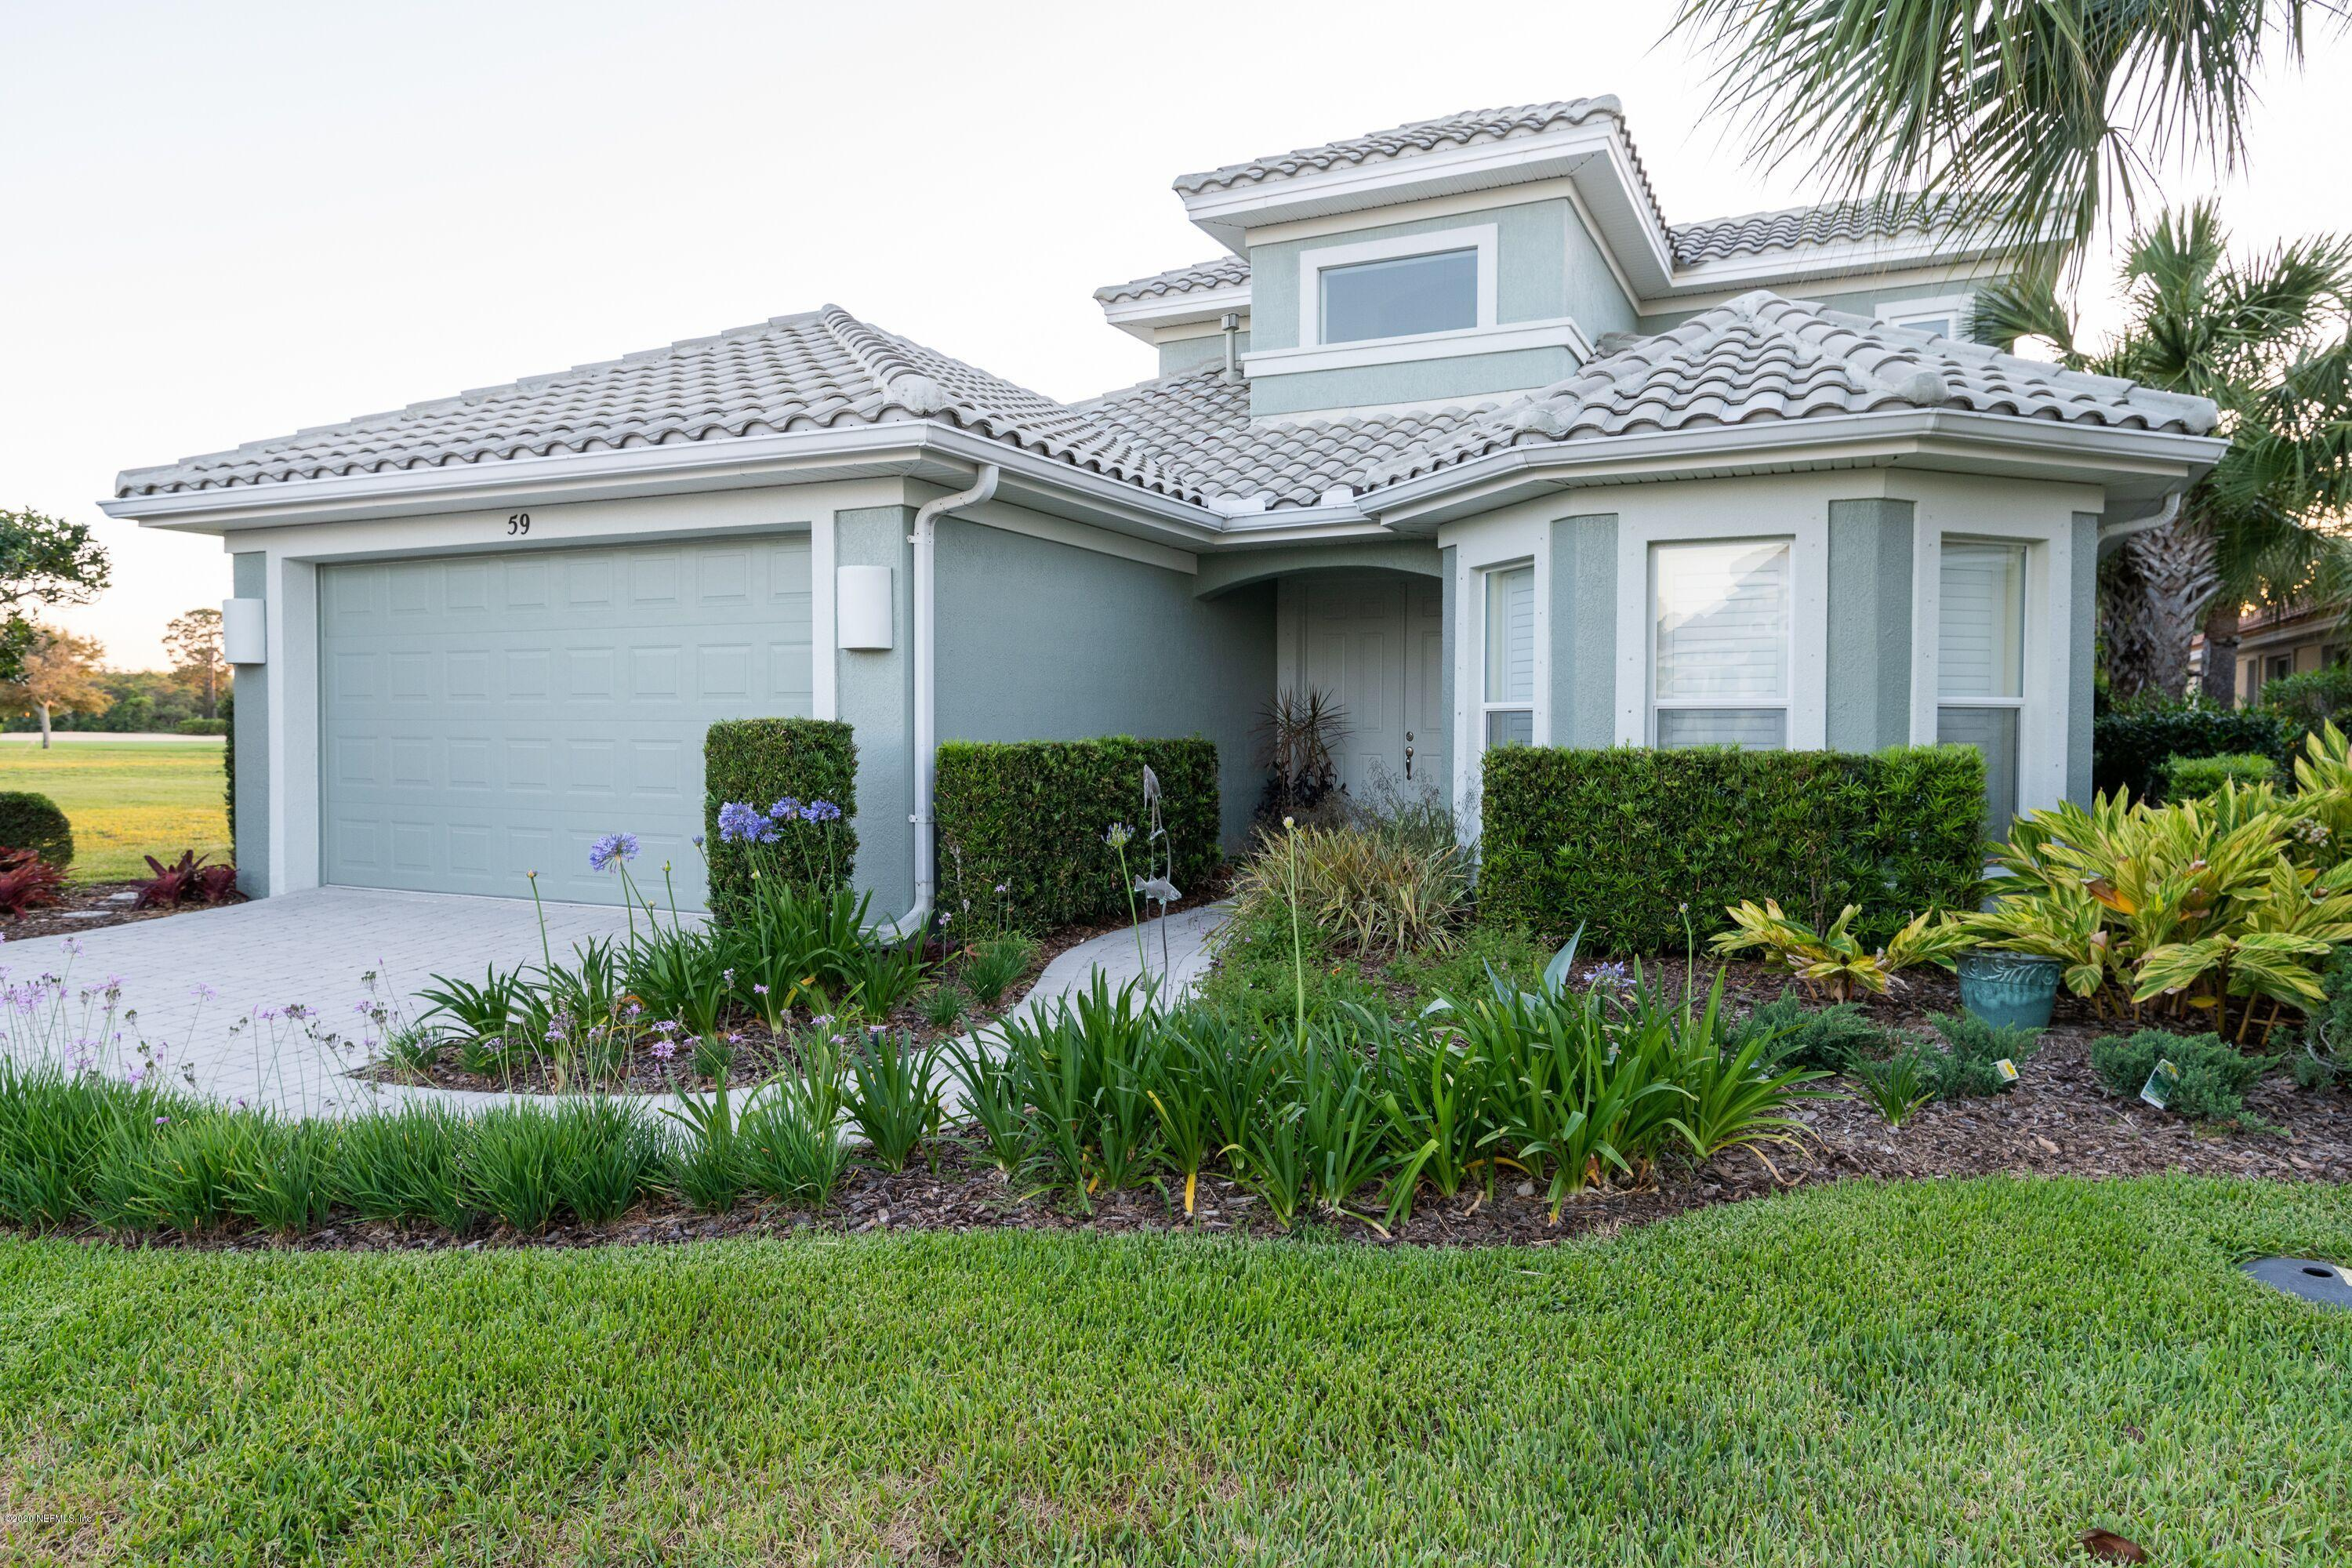 59 KINGFISHER, PALM COAST, FLORIDA 32137, 3 Bedrooms Bedrooms, ,3 BathroomsBathrooms,Residential,For sale,KINGFISHER,1053769